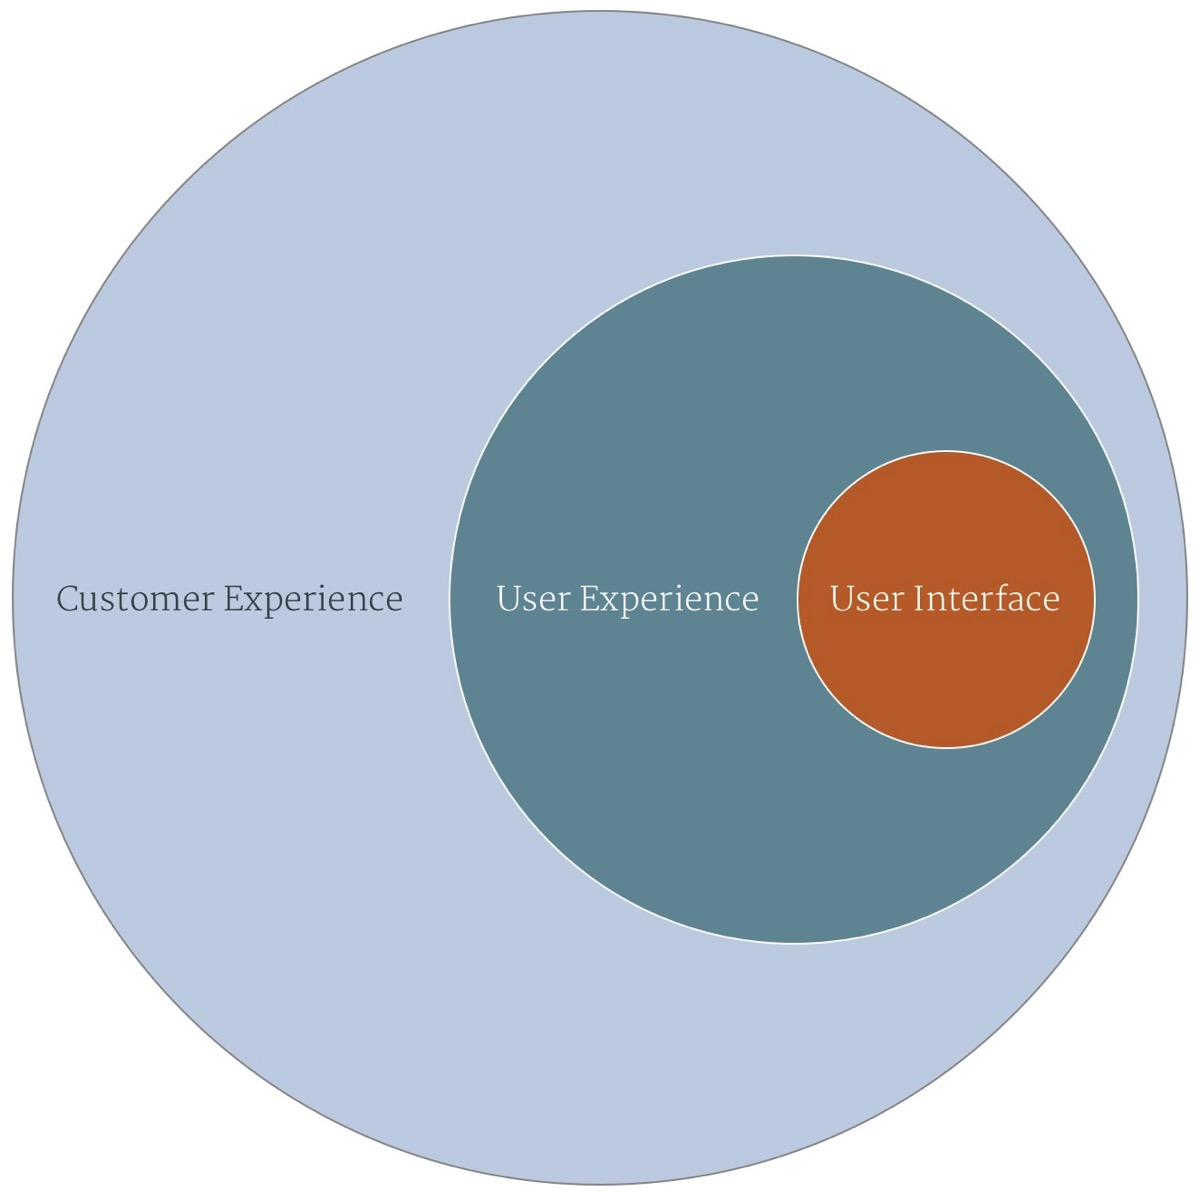 Understanding the relationship between customer experience, user experience and user interface is important.